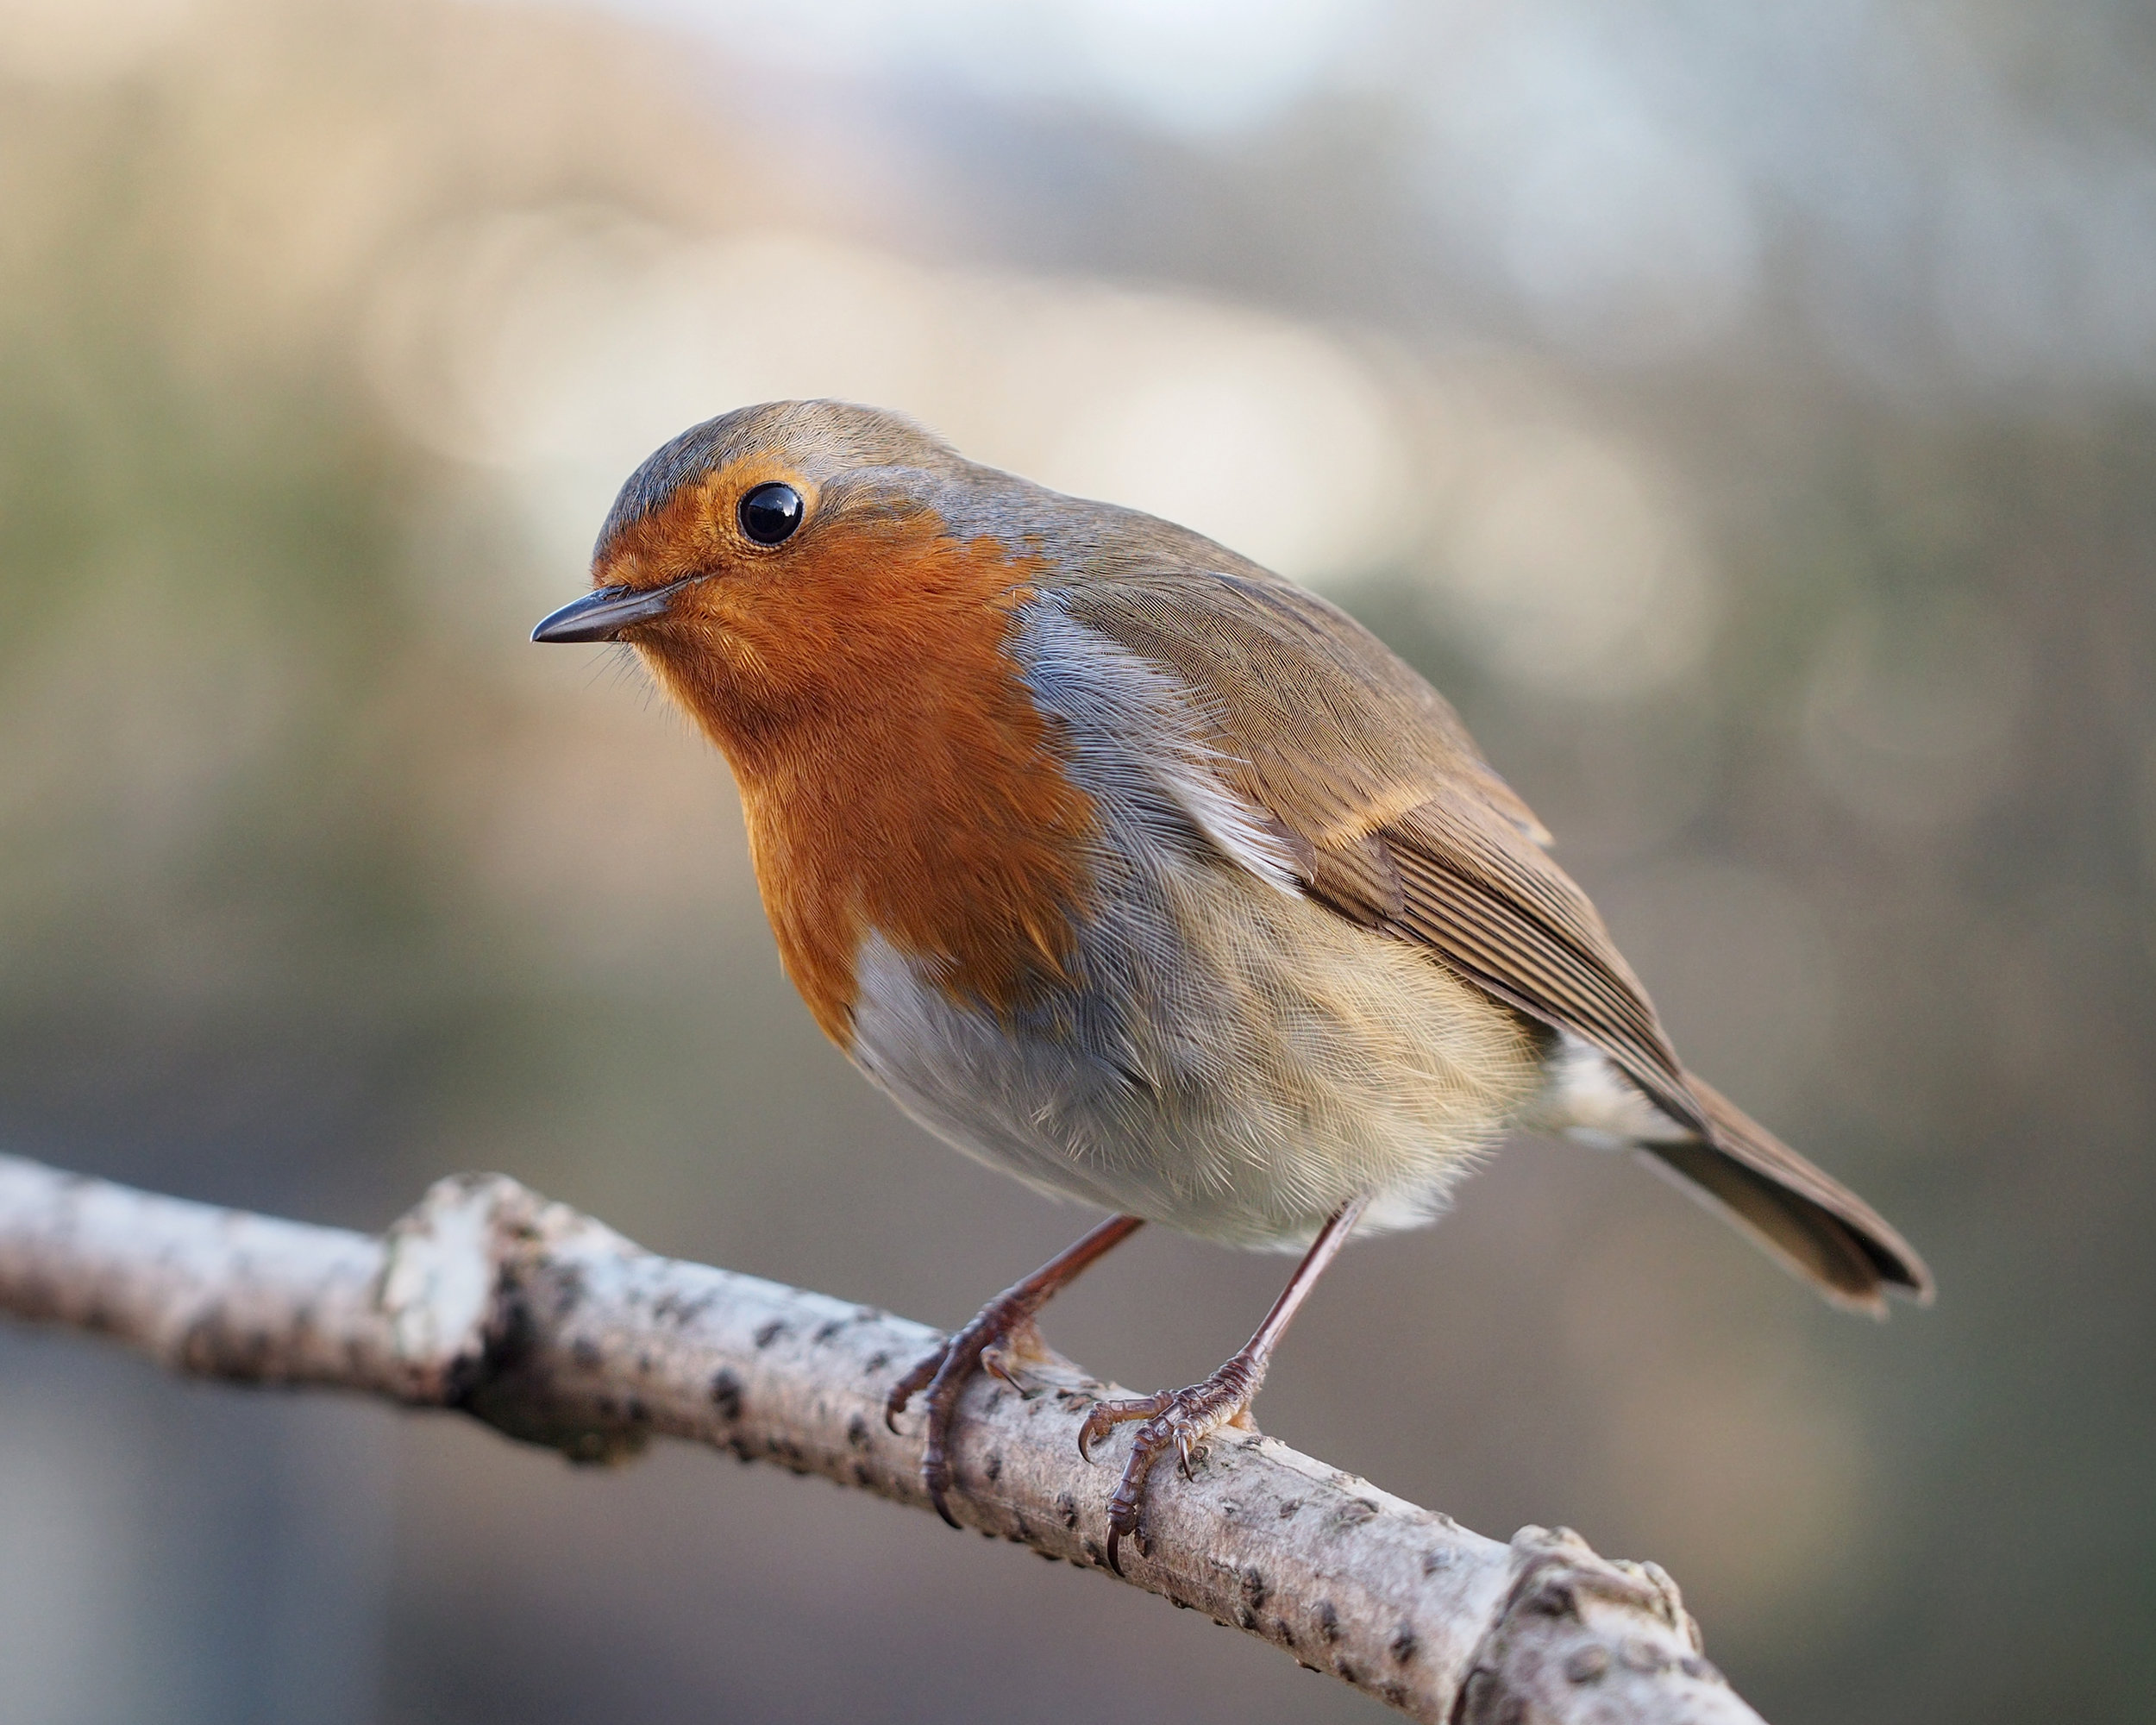 Erithacus_rubecula_with_cocked_head.jpg